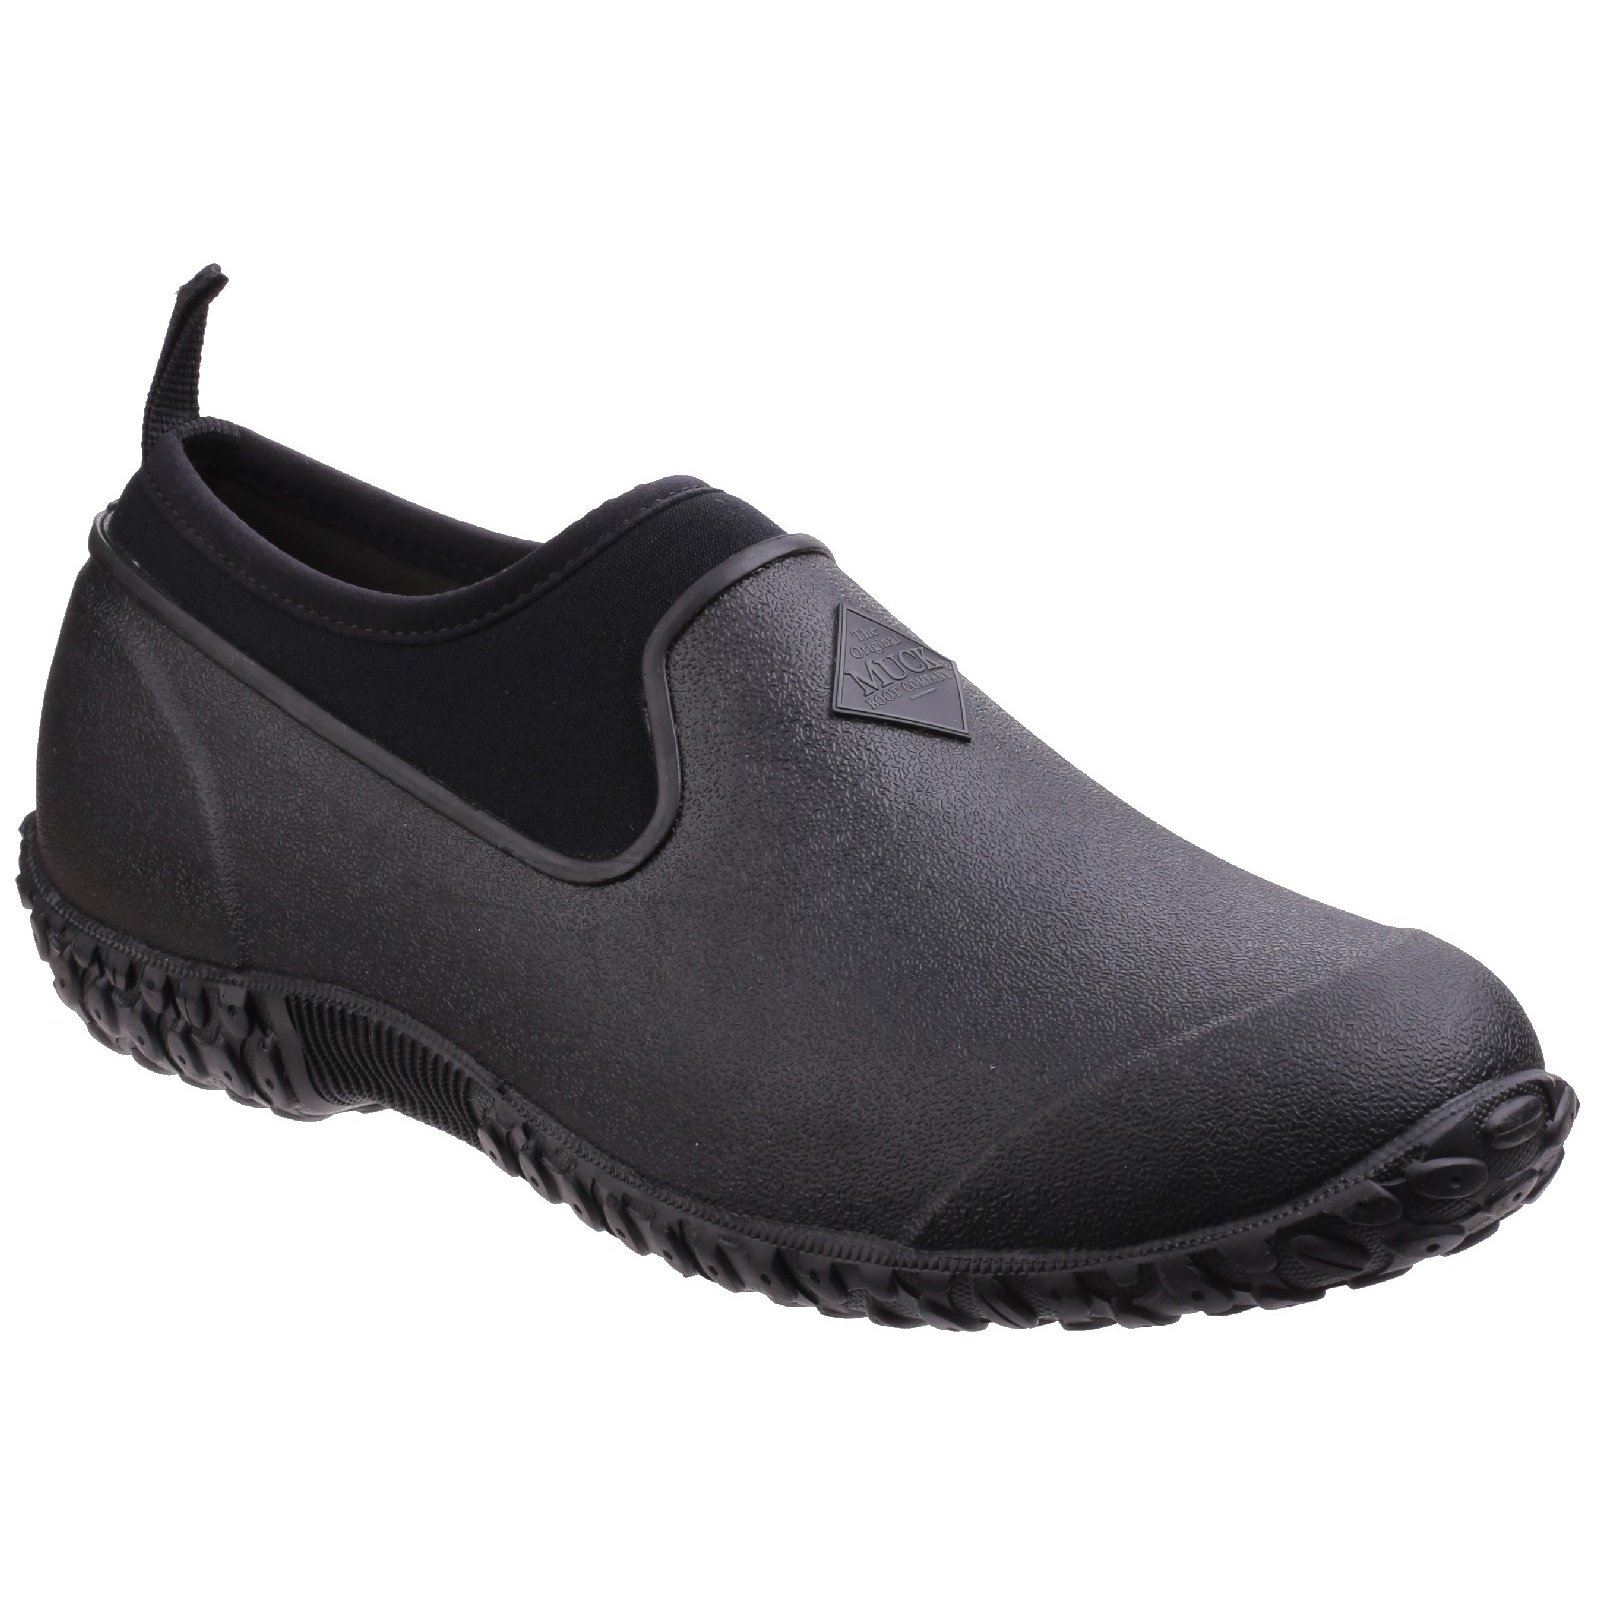 Muck Boot Mens Muckster II Low All Purpose Lightweight Shoes (7 US) (Black) by Muck Boot (Image #1)